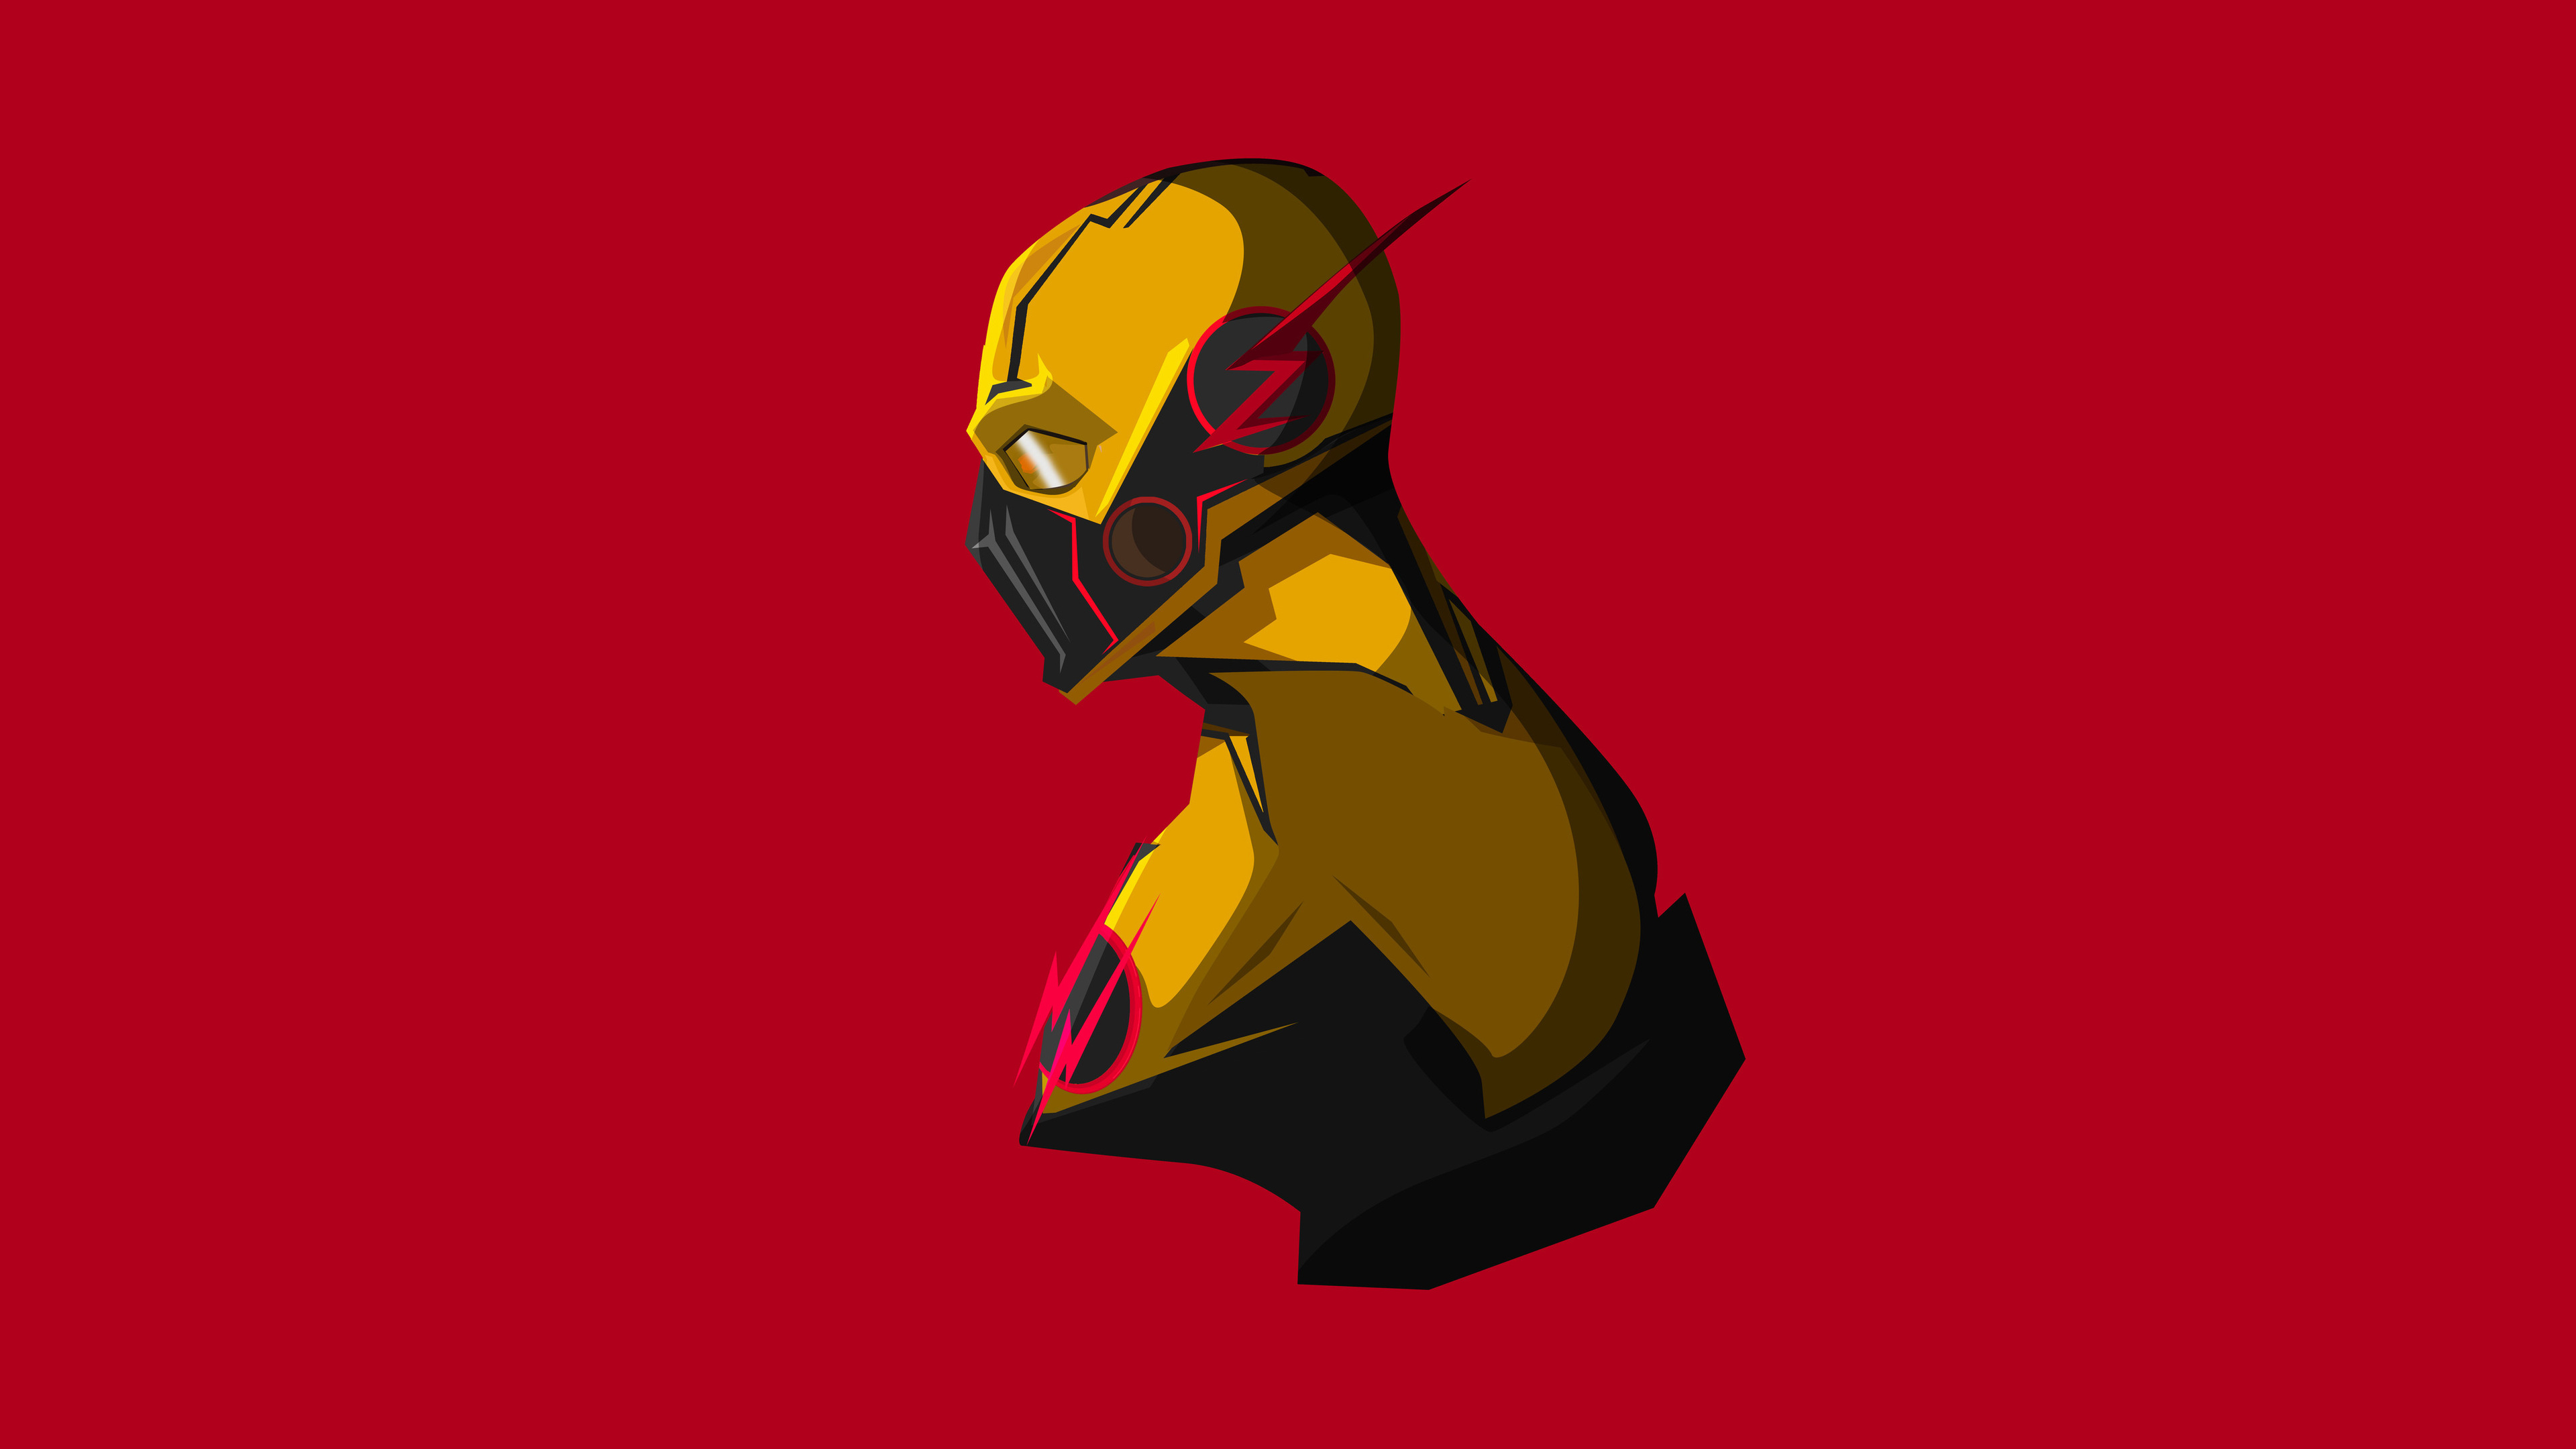 Wallpaper 4k Reverse Flash Minimalism 4k 4k Wallpapers Artist